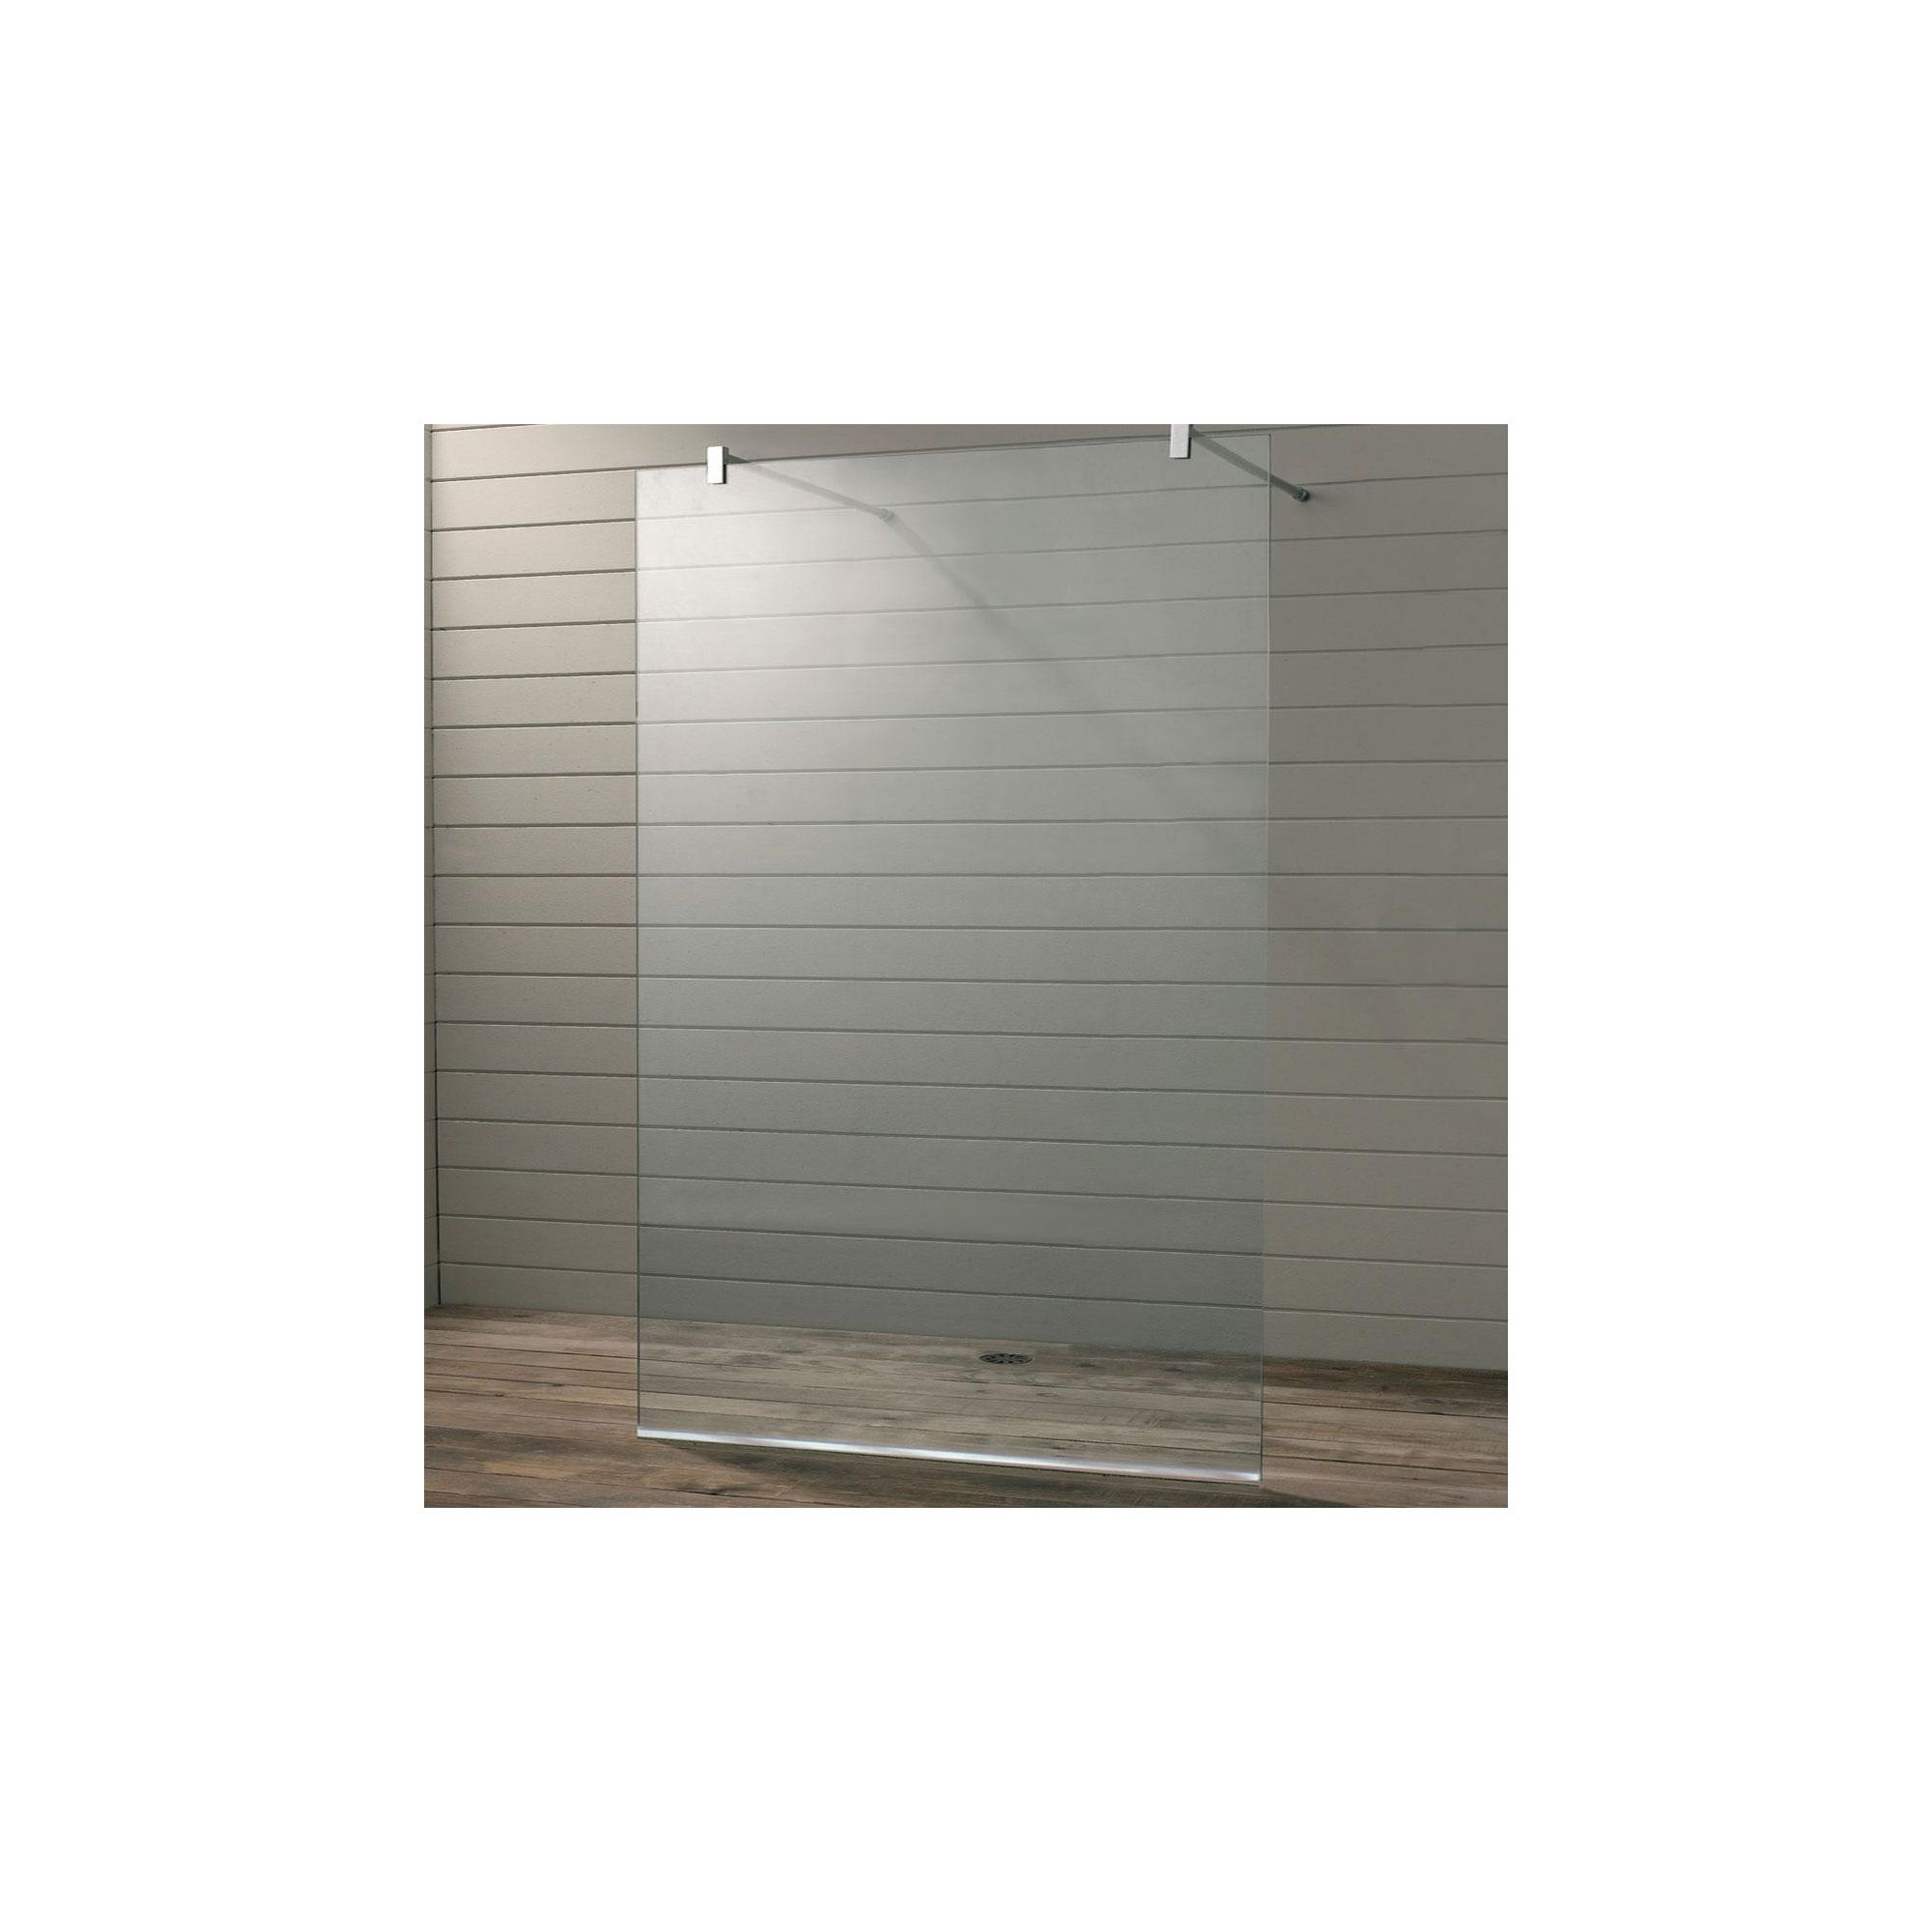 Duchy Premium Wet Room Glass Shower Panel, 800mm x 800mm, 10mm Glass, Low Profile Tray at Tesco Direct